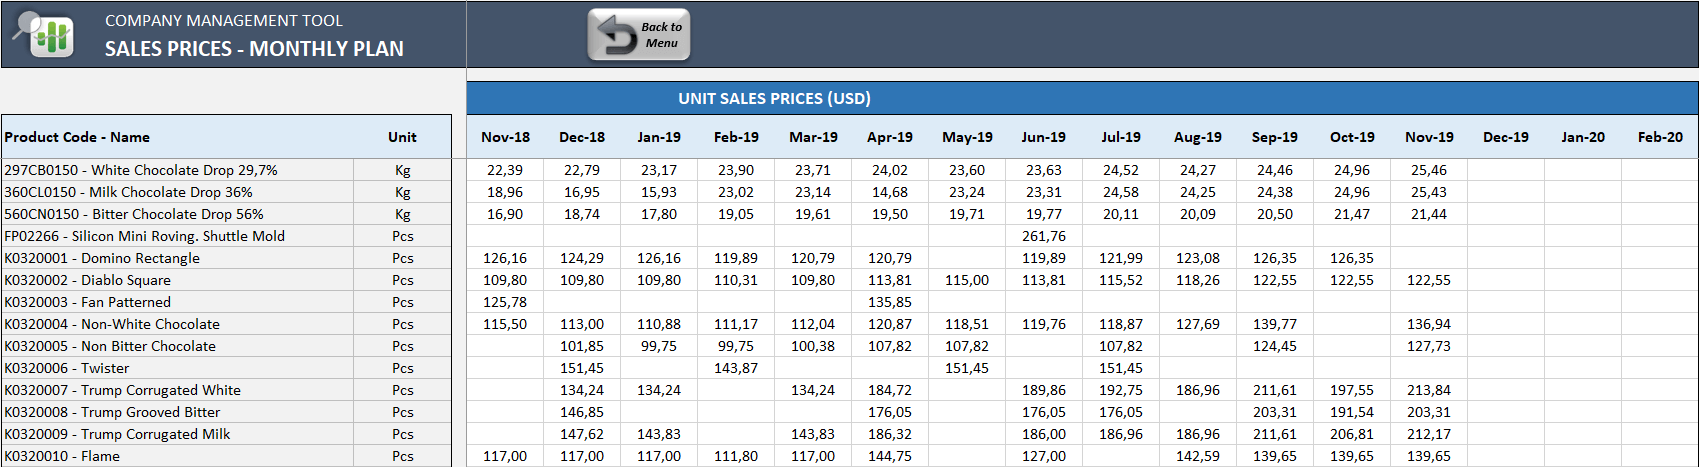 Small-Business-ERP-Template-08-Sales Prices